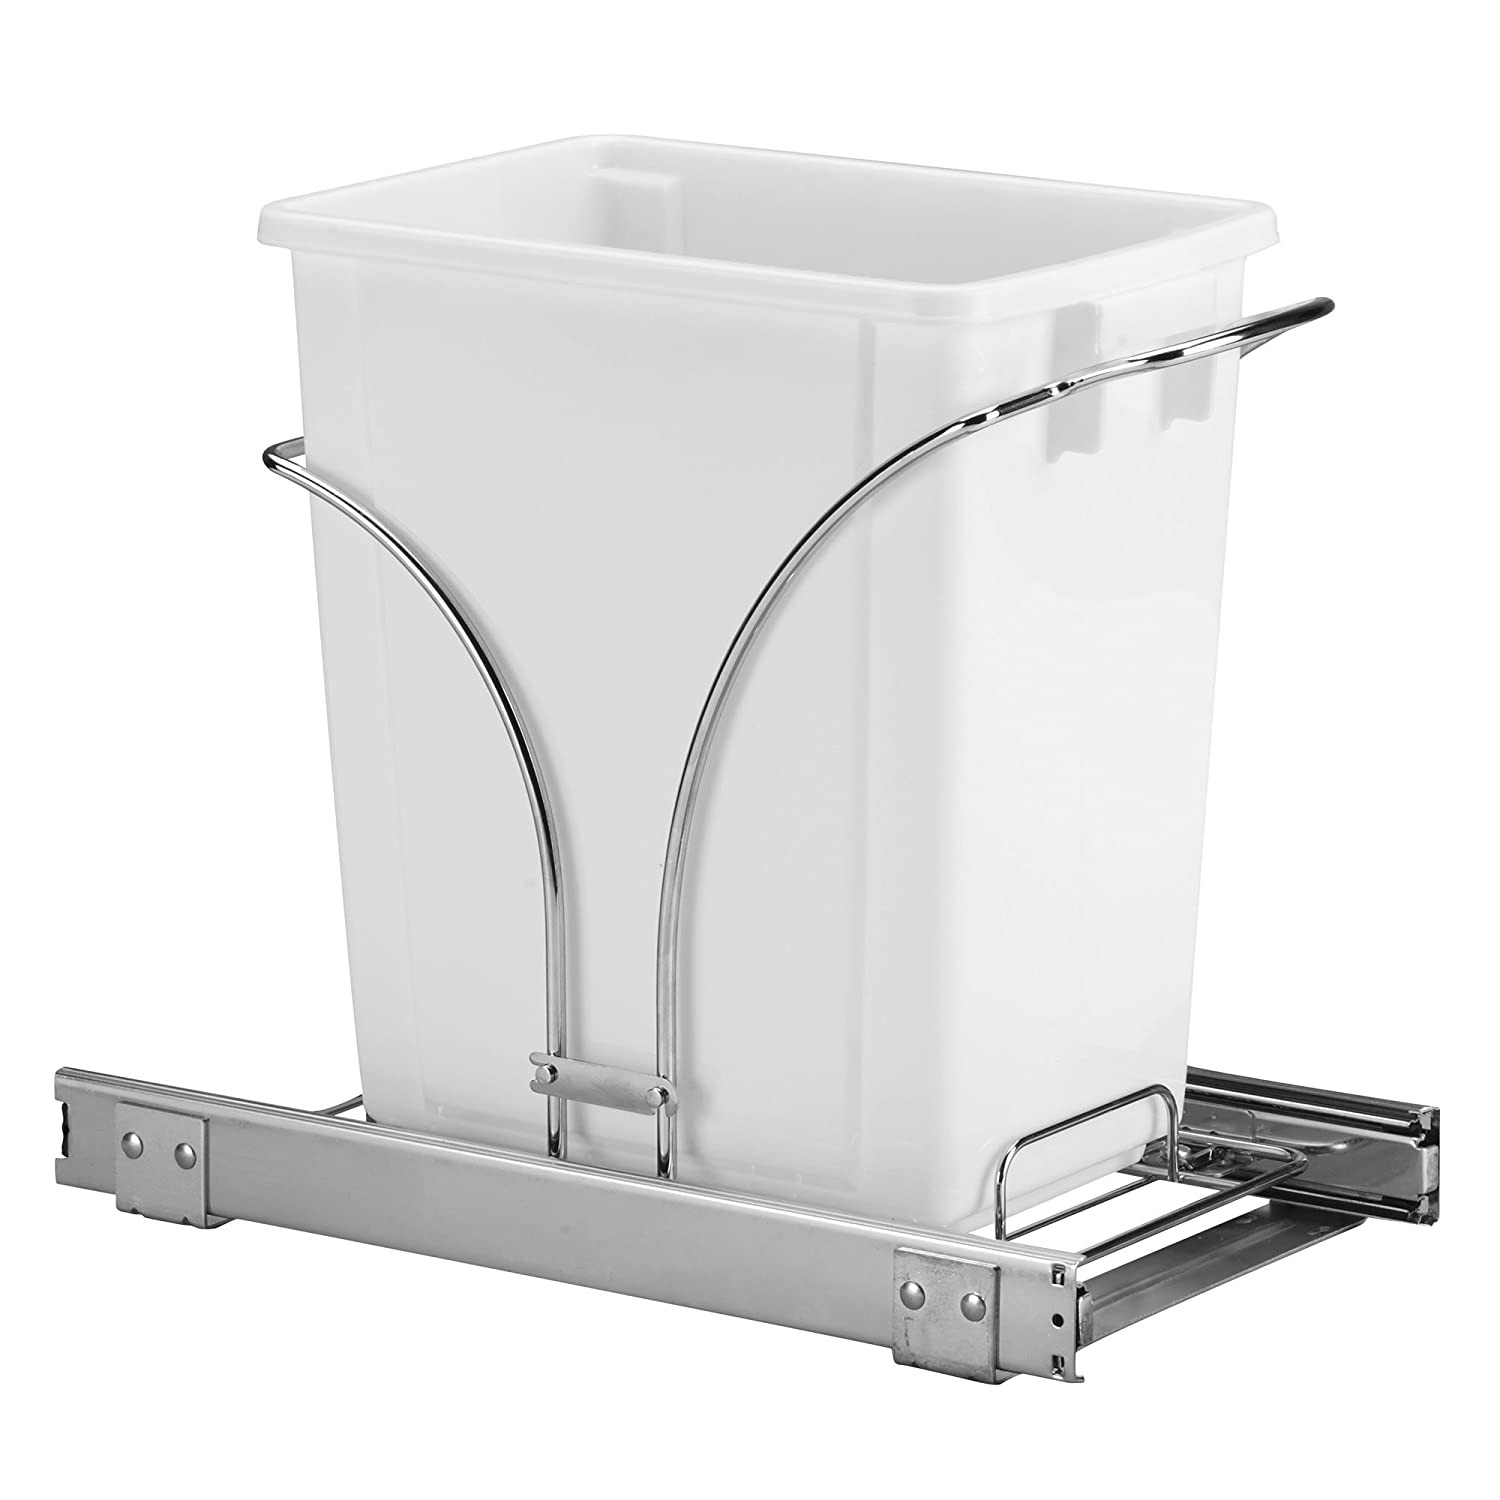 Household Essentials C29537-1 Under Cabinet Single Sliding Trash Can Caddy, 5-Gallon